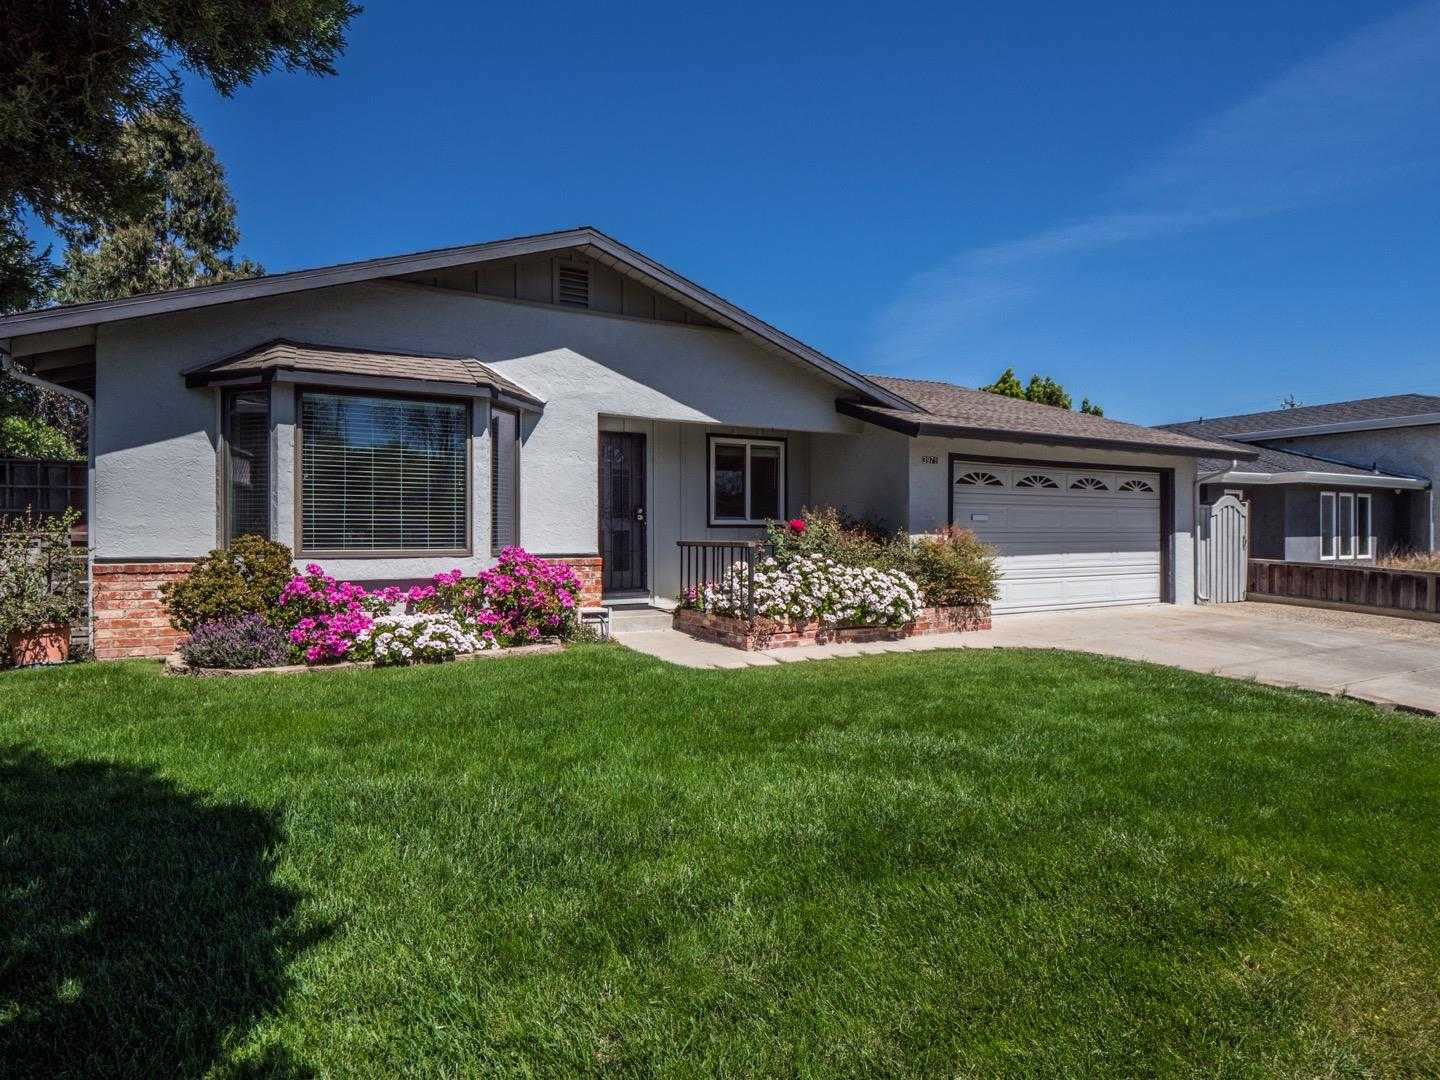 $1,285,000 - 4Br/2Ba -  for Sale in Campbell